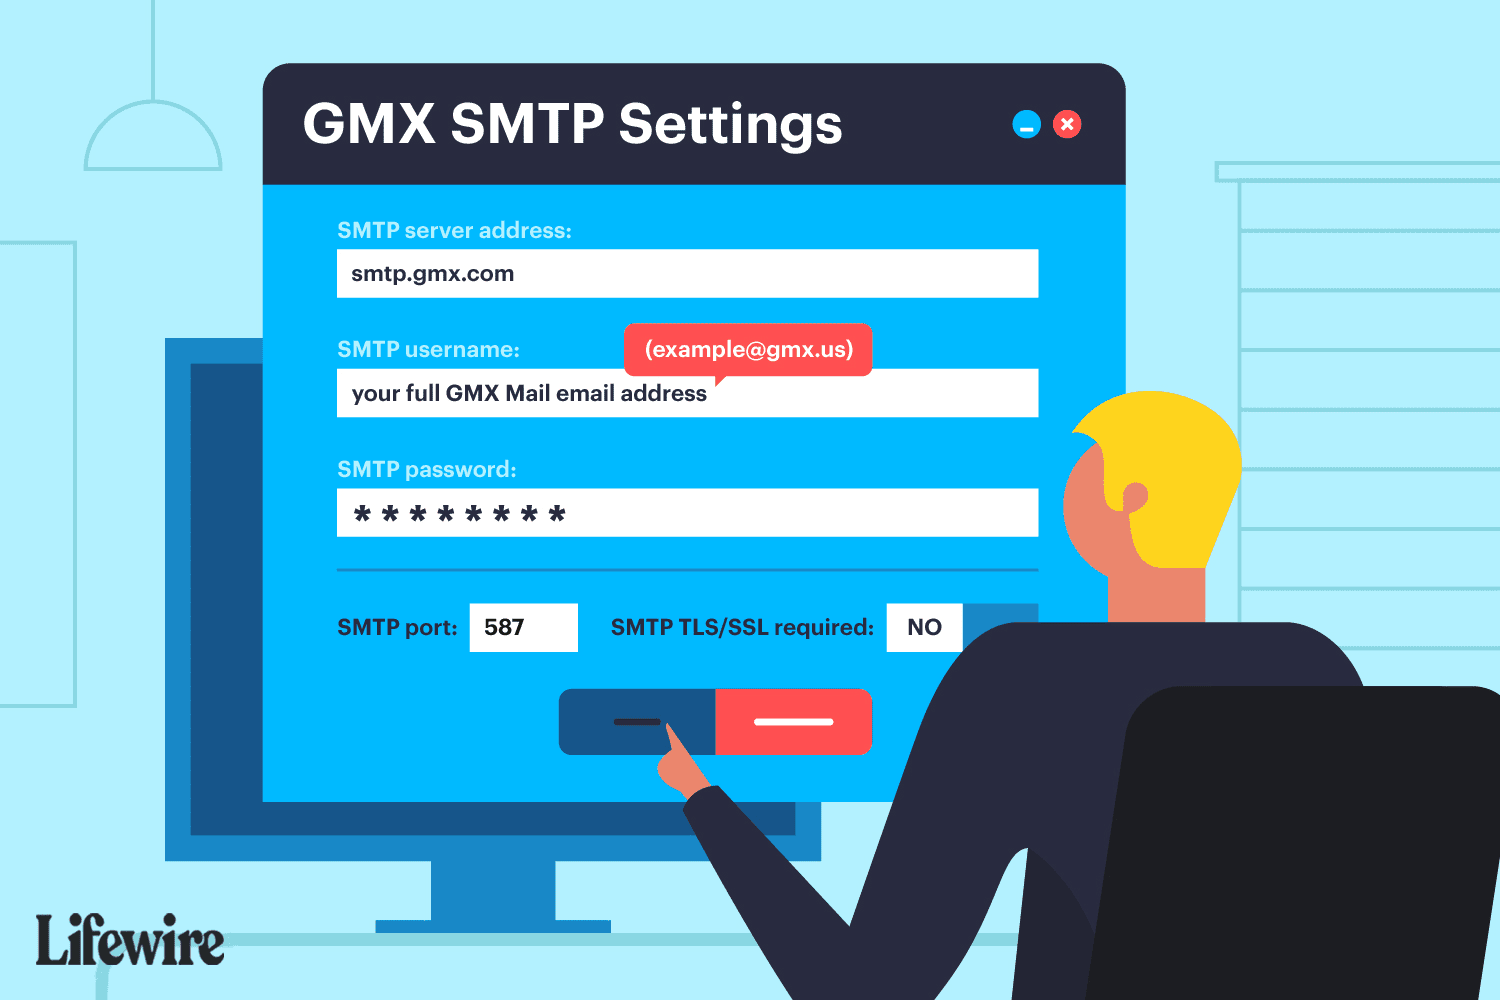 An illustration of the GMX SMTP settings.